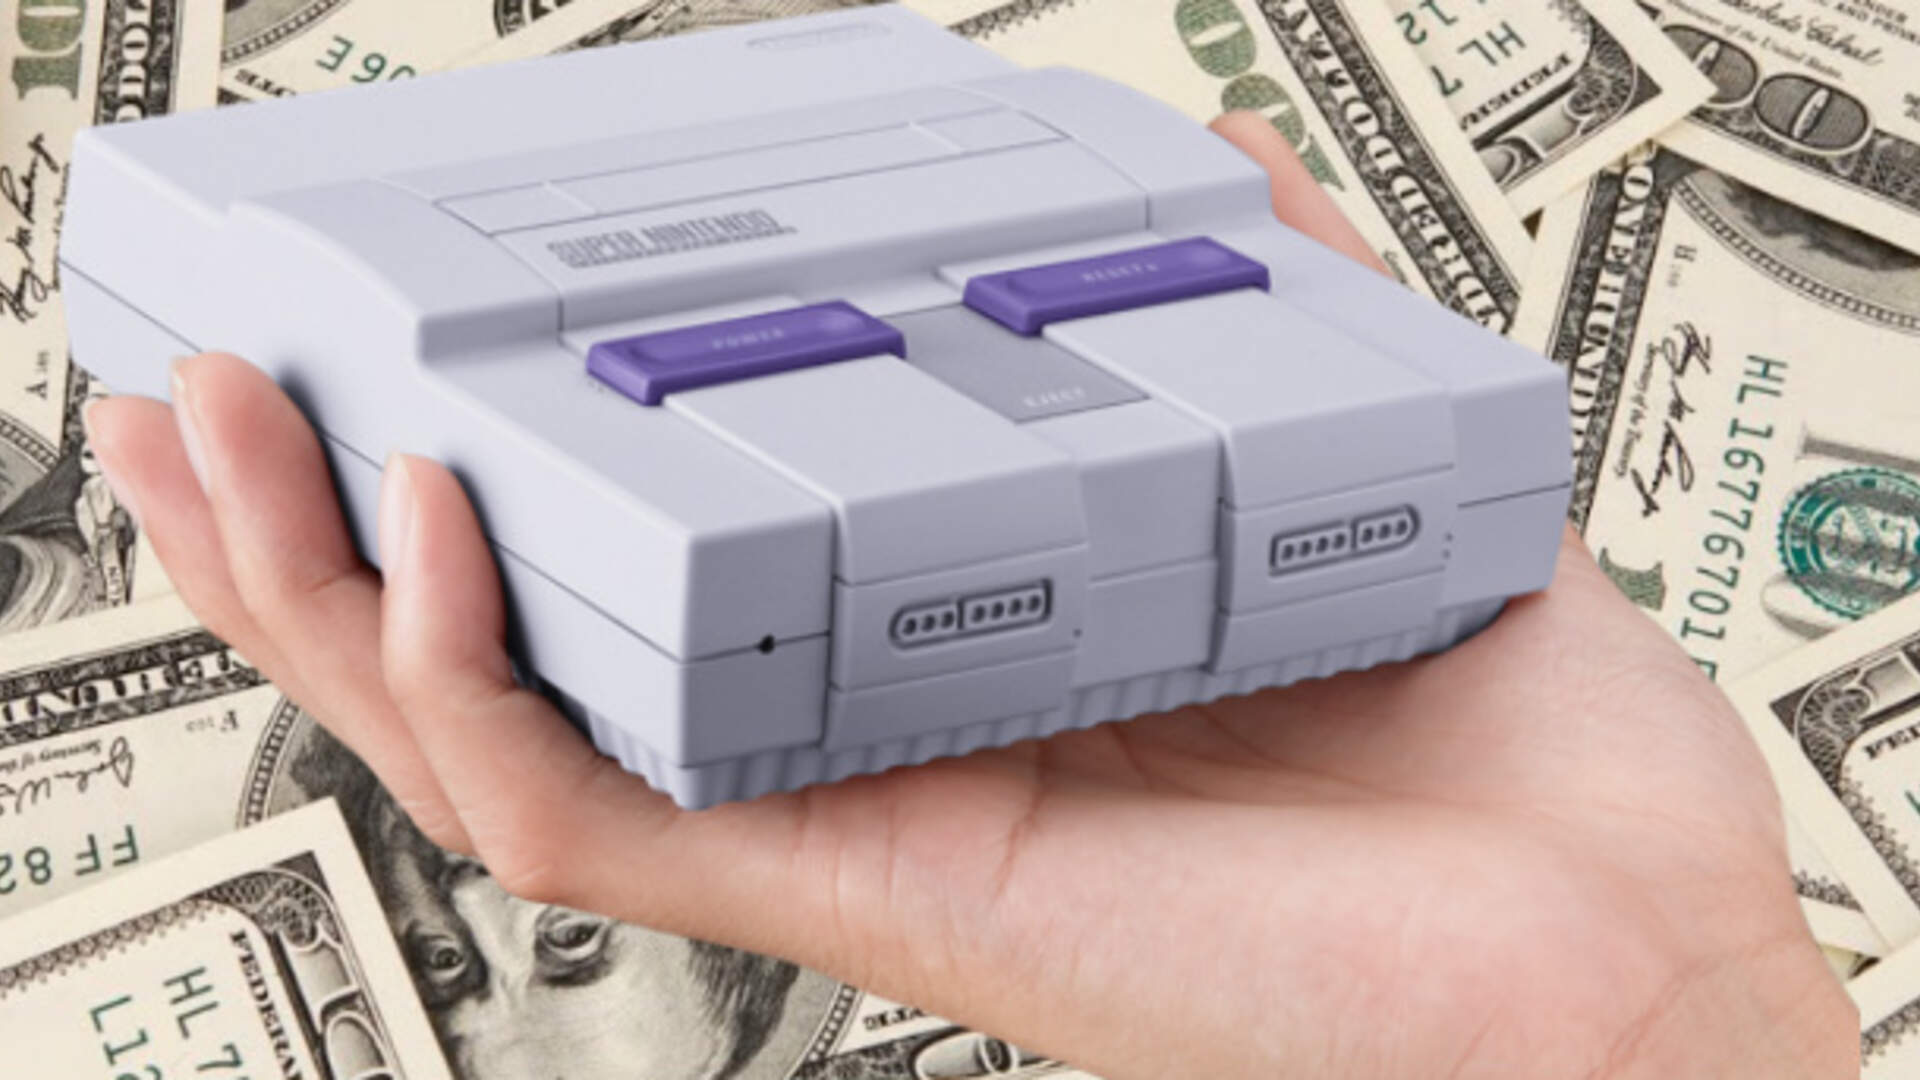 SNES Classic Surpasses Five Million Units